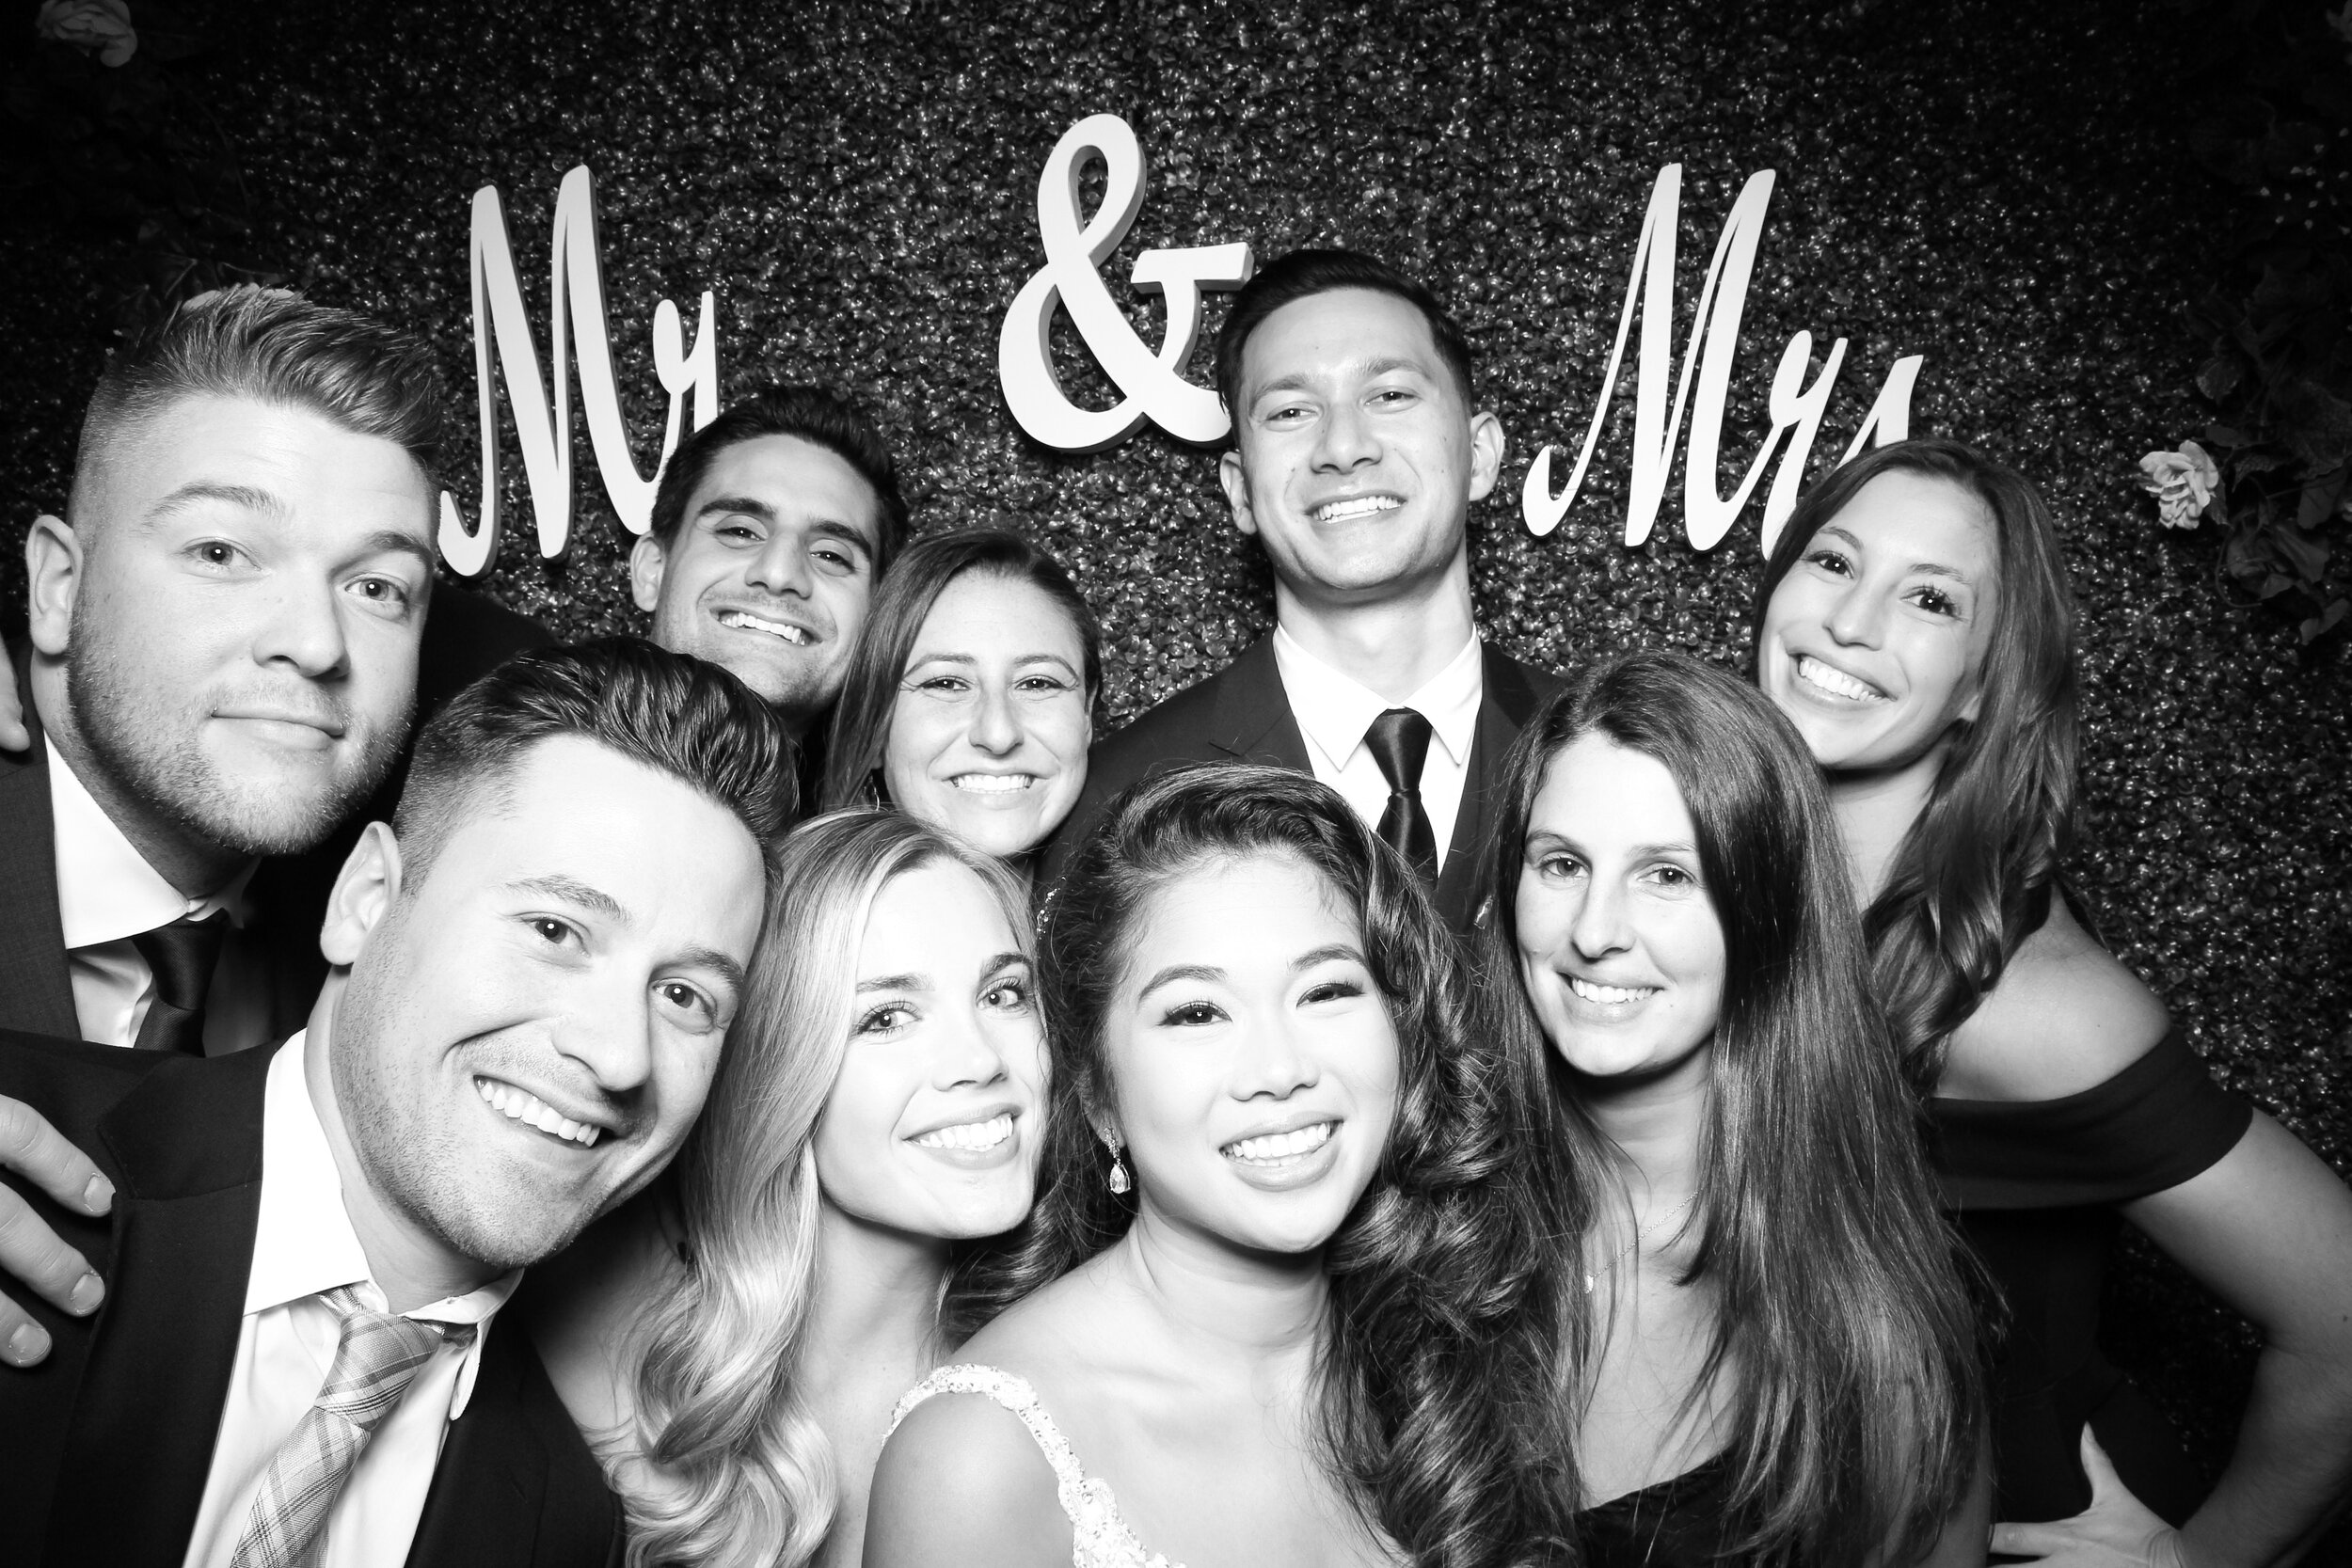 Green_Hedge_Ivy_Wall_Backdrop_Photo_Booth_Rental_Chicago_09.jpg